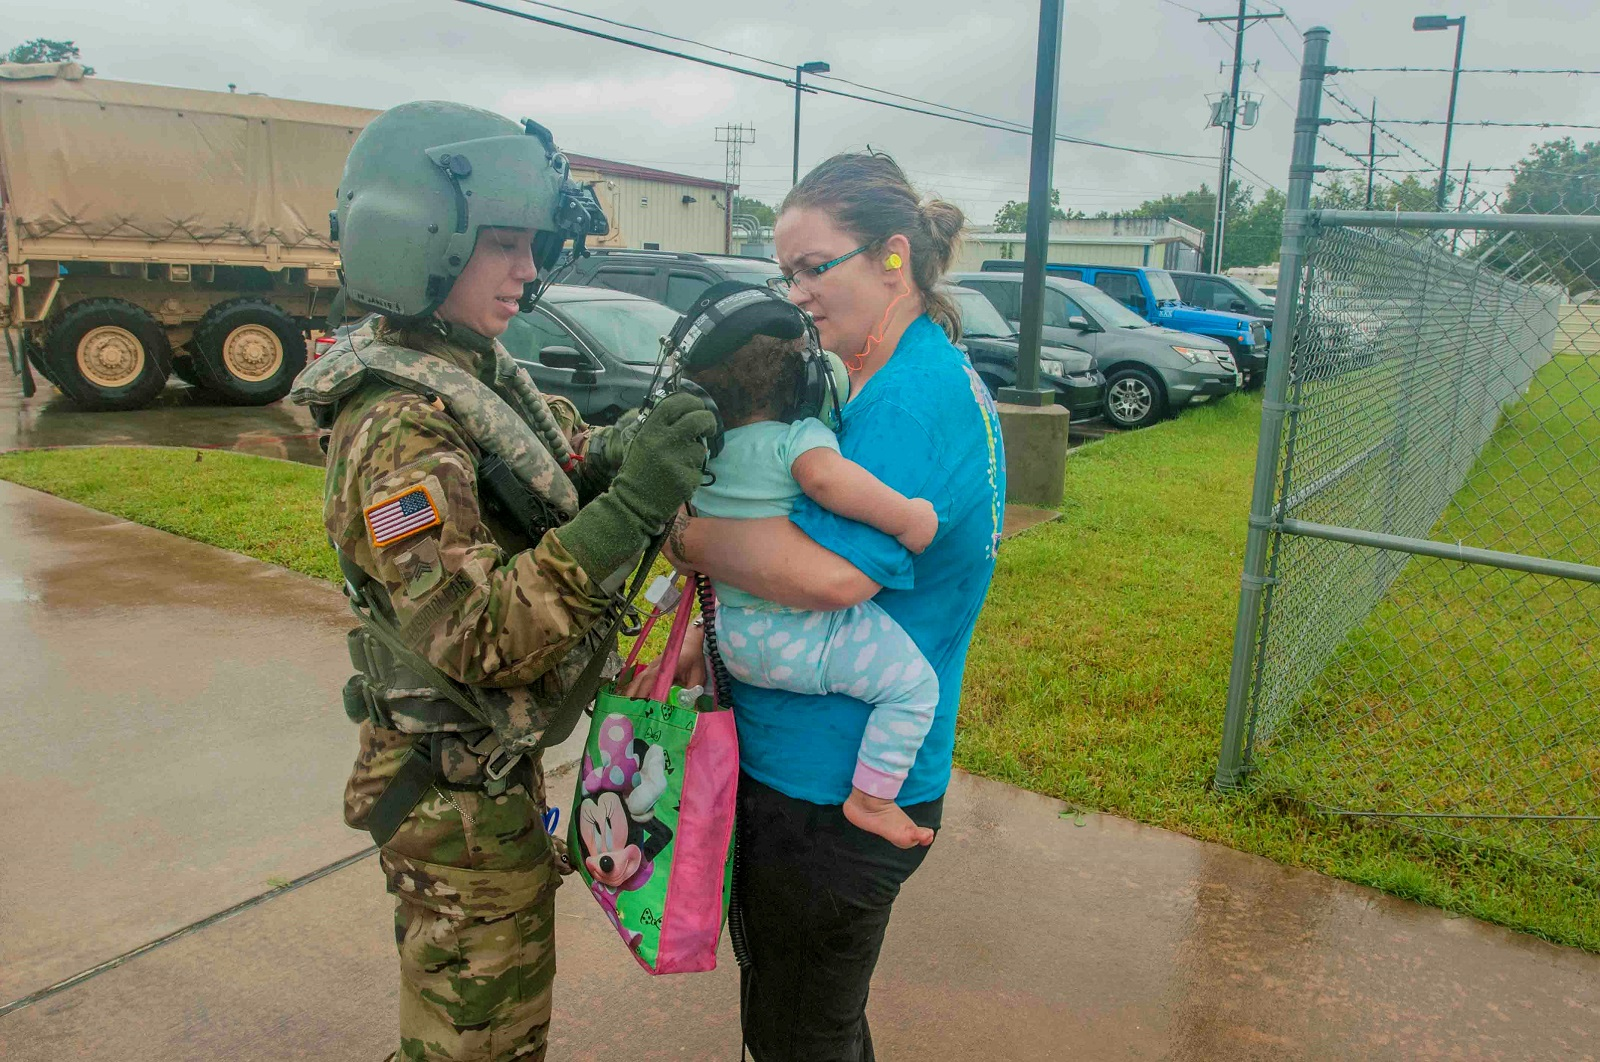 Sgt. Sara Cashdollar, an Army Reserve flight paramedic with C Company, 7-158 General Services Aviation Battalion, escorts a mother and her child off an aeromedical evacuation helicopter in Conroe, Texas, August 29, 2017. (Capt. Loyal Auterson/Army)